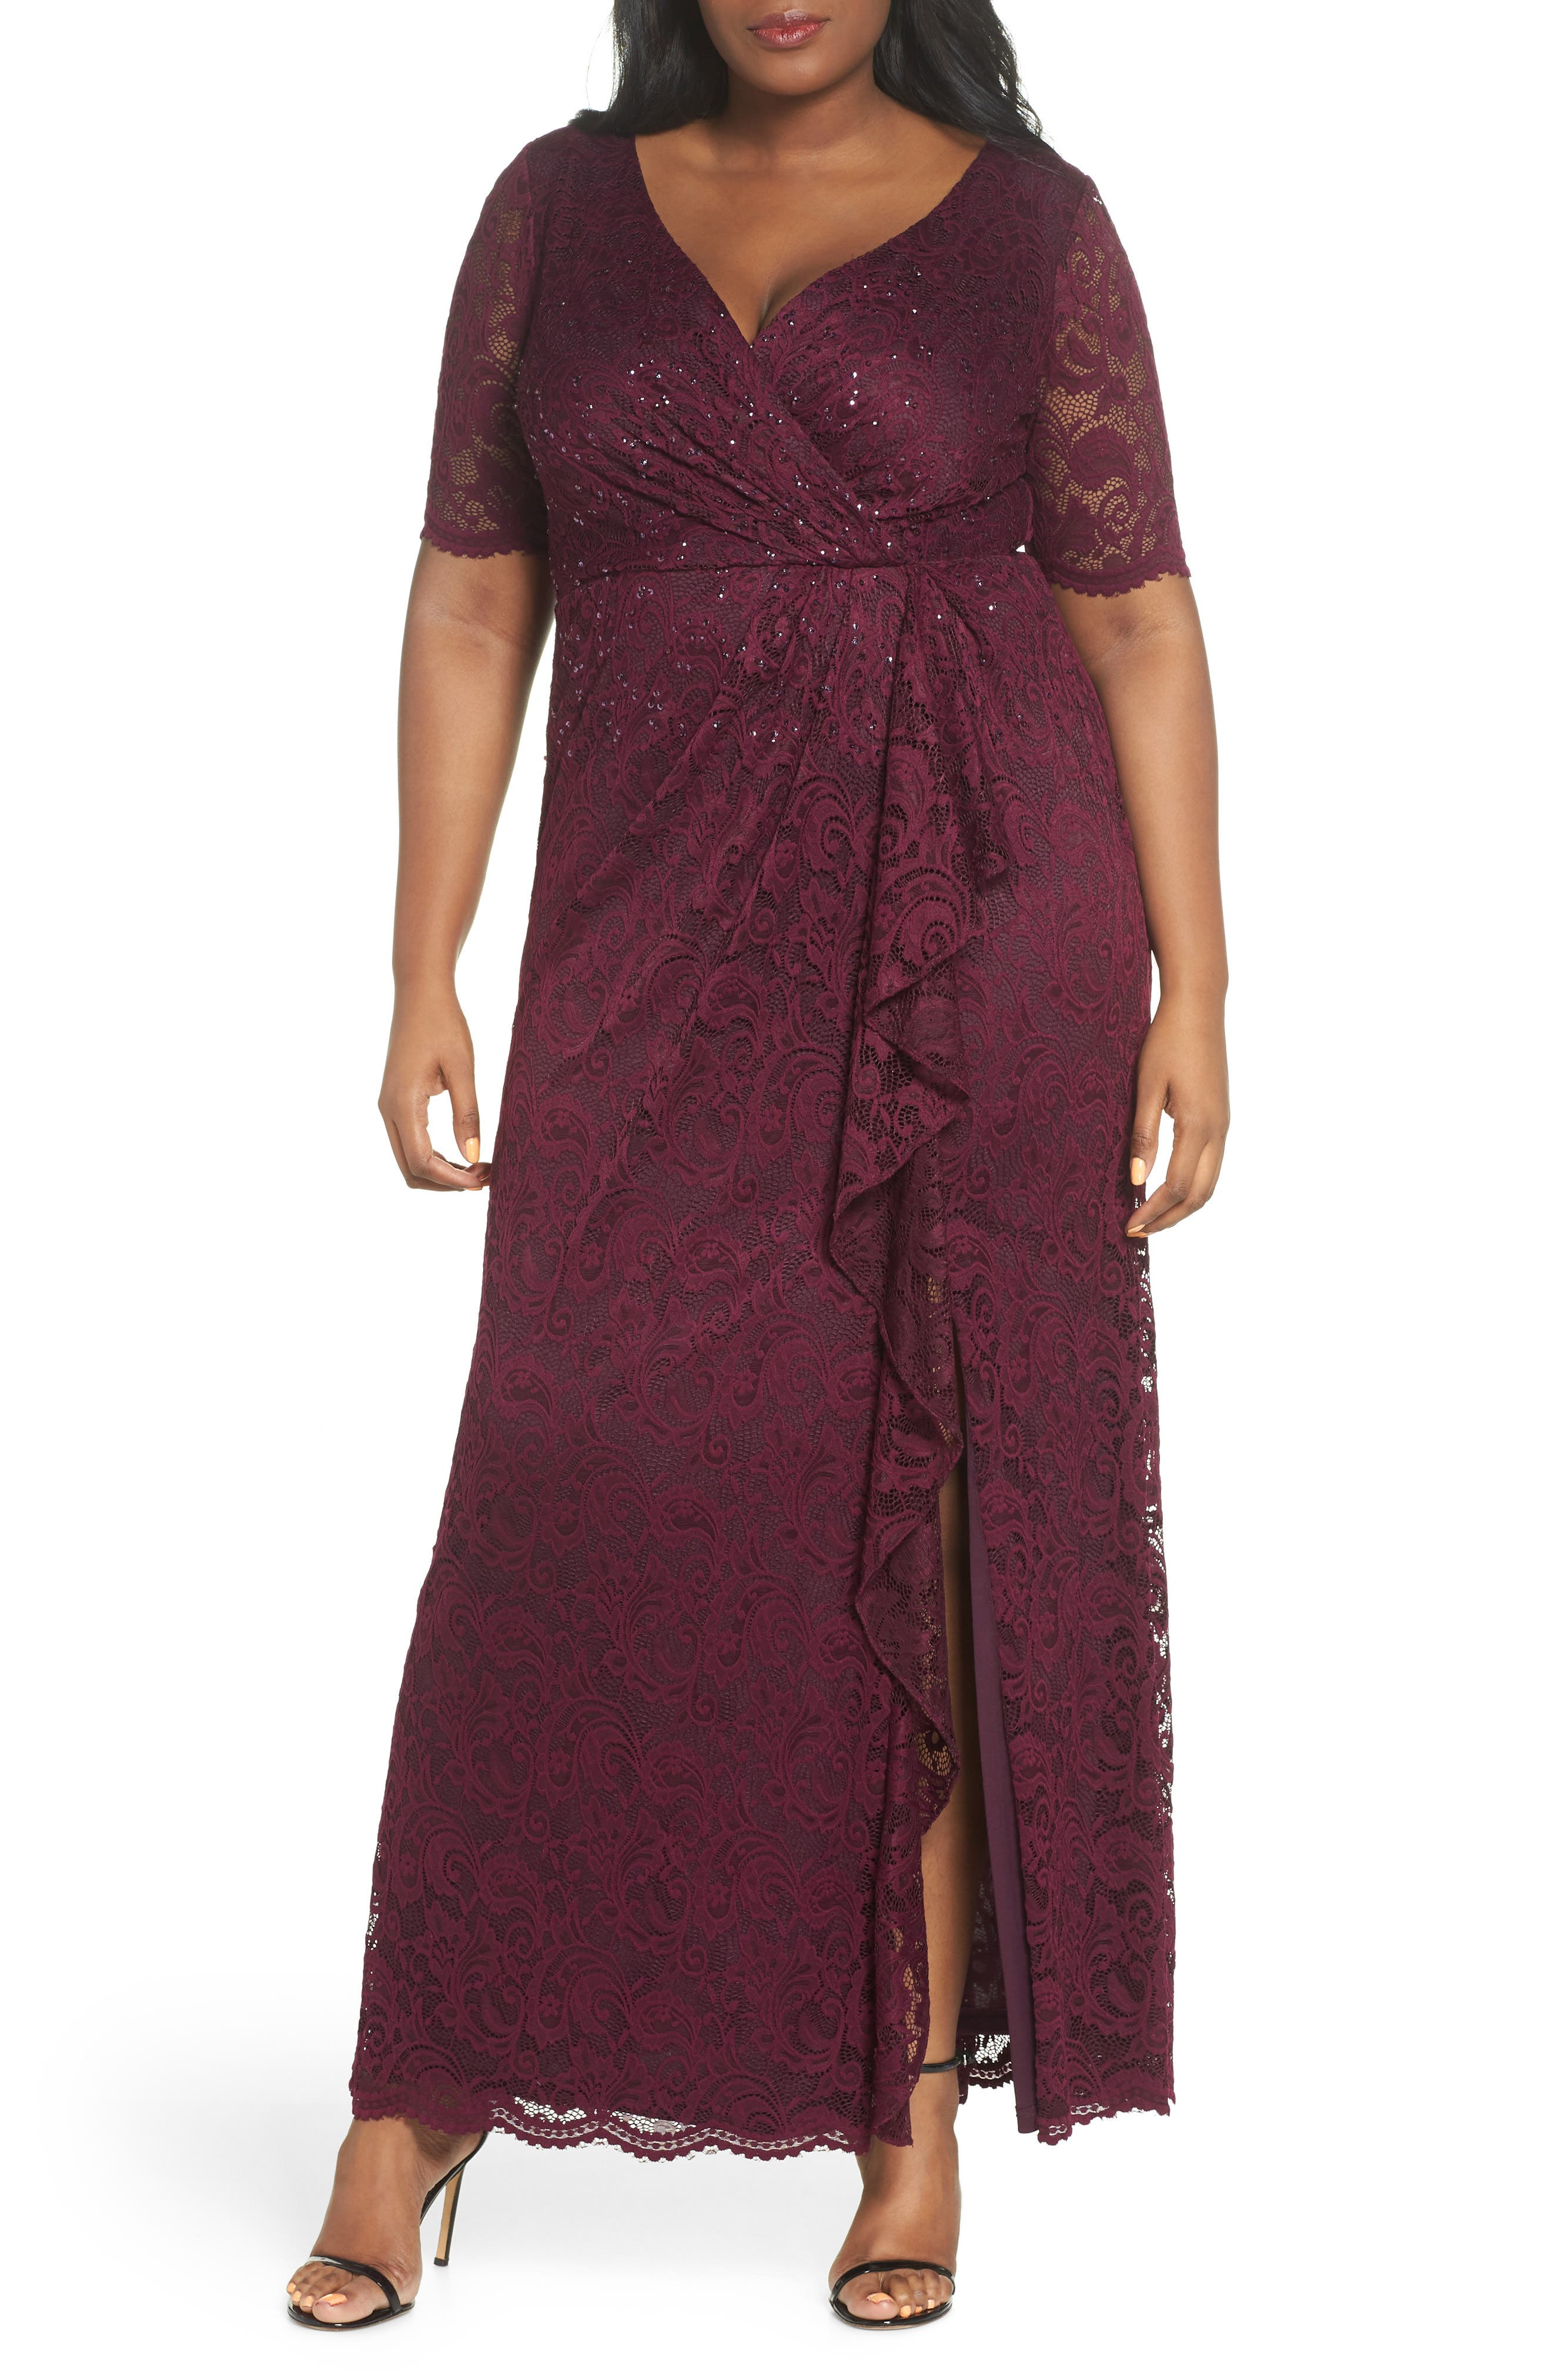 Cascade Ruffle Sequin Lace Gown,                             Main thumbnail 1, color,                             600